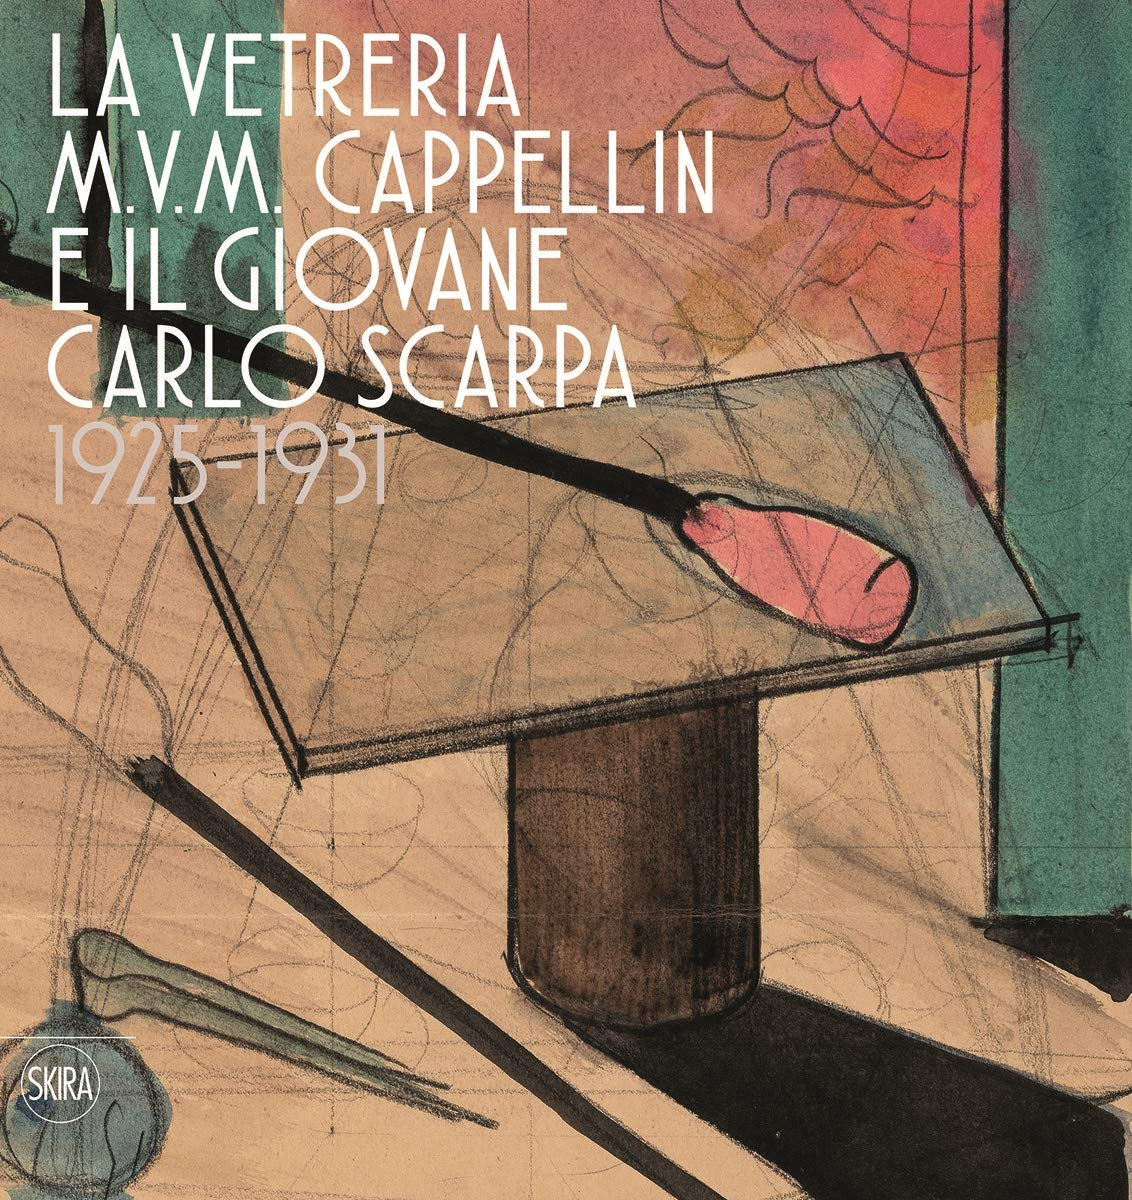 The M.V.M. Cappellin Glassworks And A Young Carlo Scarpa